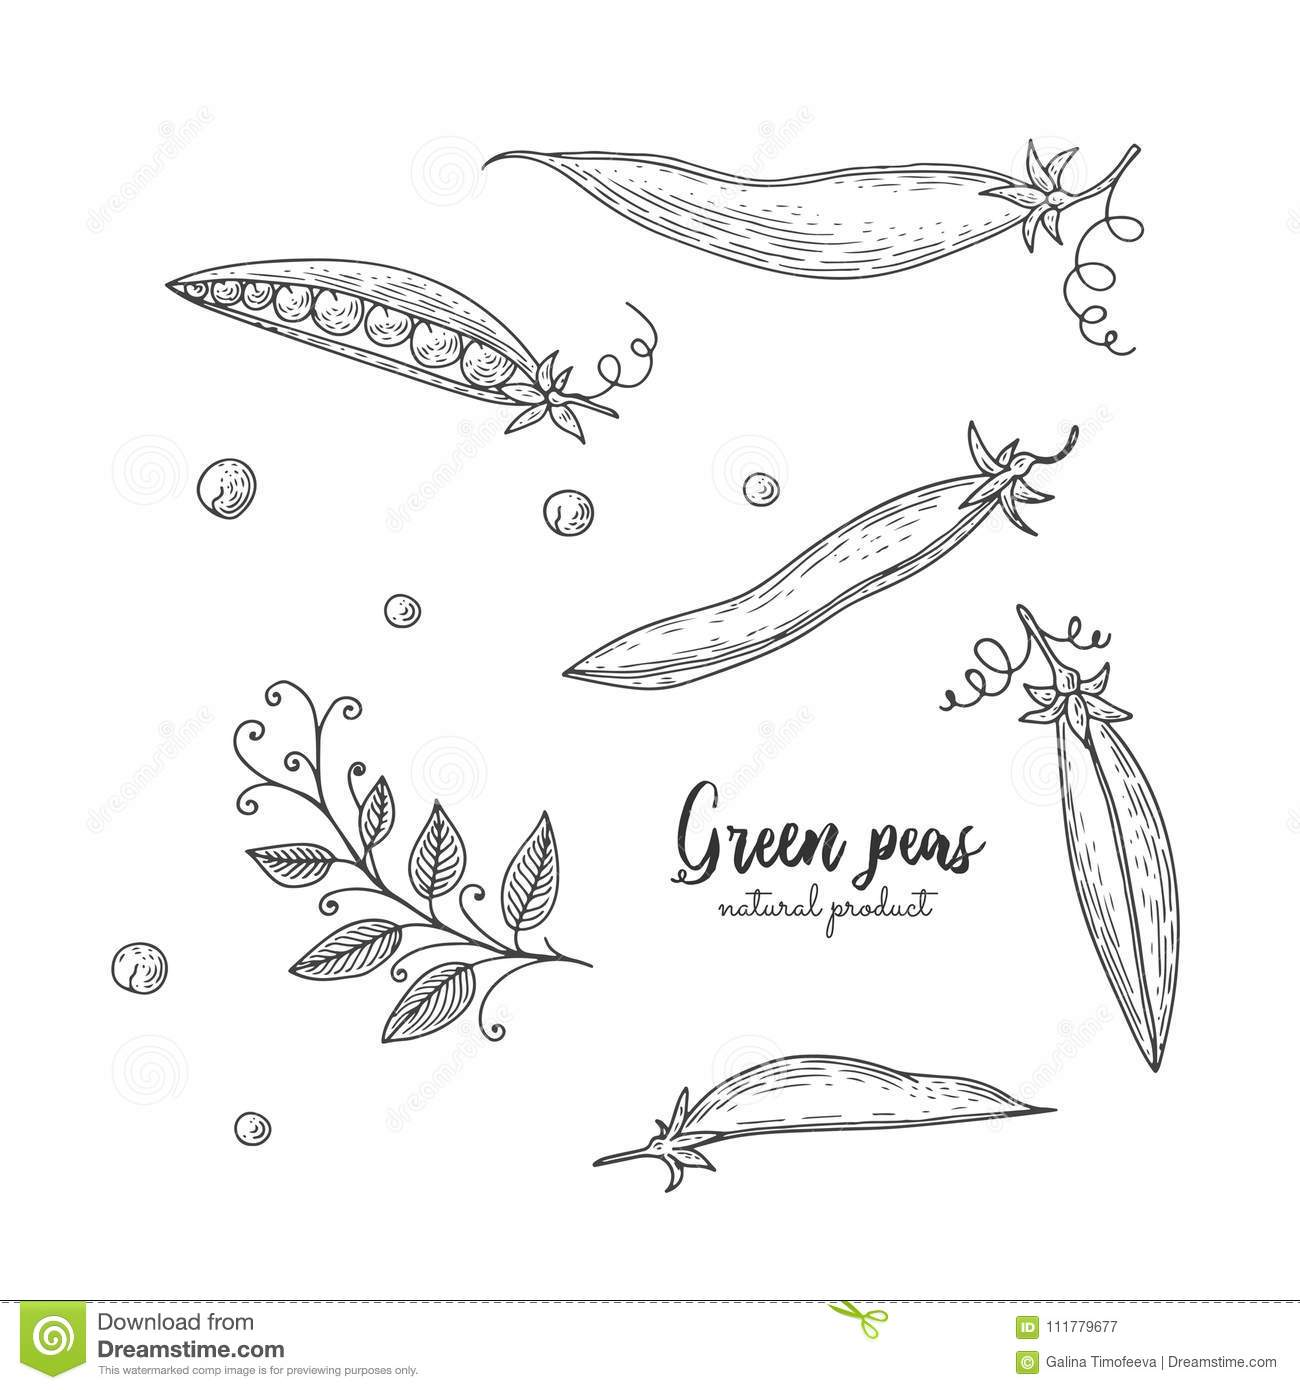 Vector engraved illustration of green peas. Eco organic food. Vegetarian food for design menu, recipes, wrapping paper